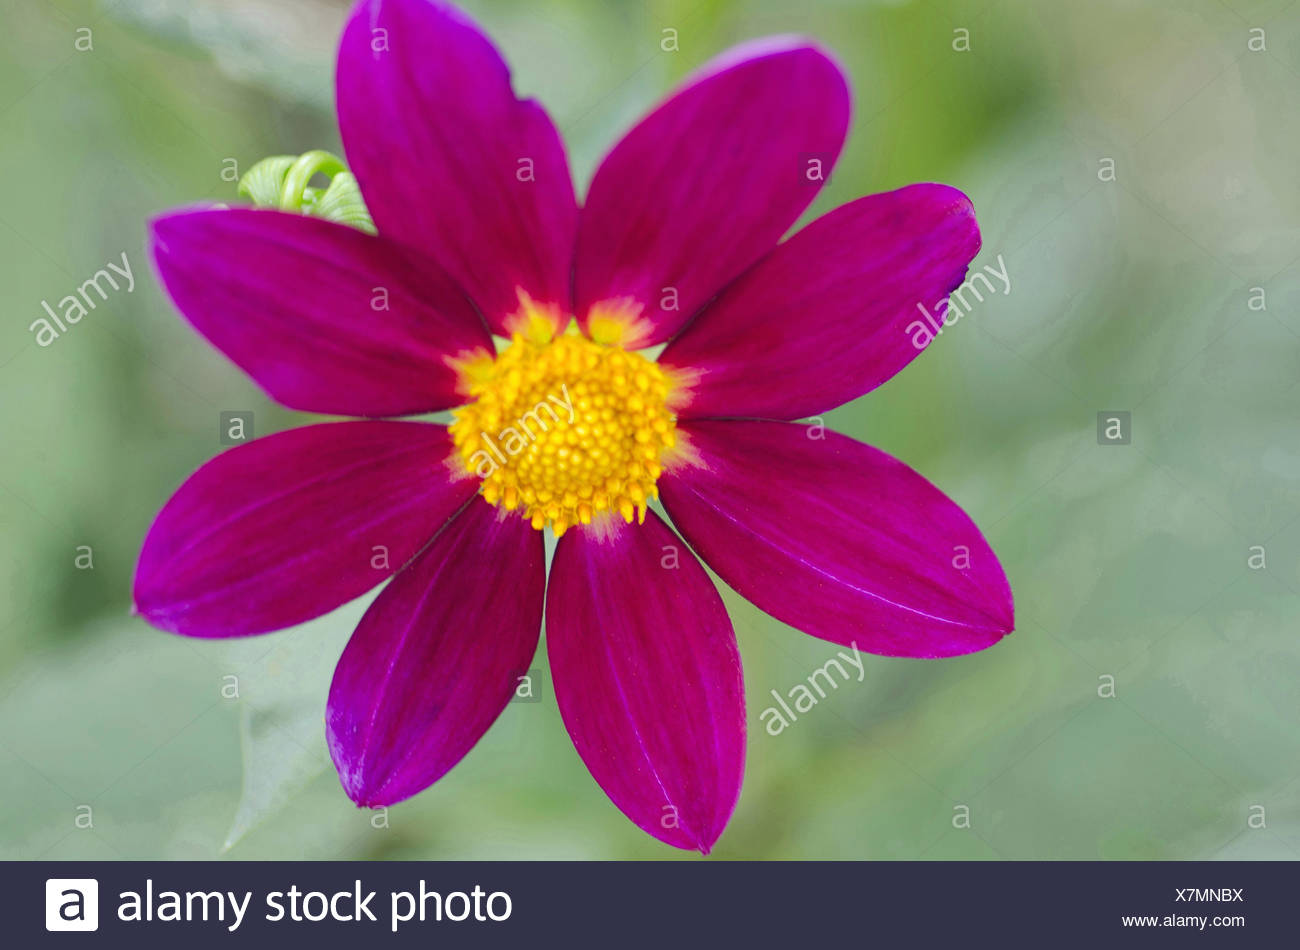 Magenta Dahalia, Harish-Chandra Research Institute Campus, Allahabad, Uttar Pradesh, India - Stock Image